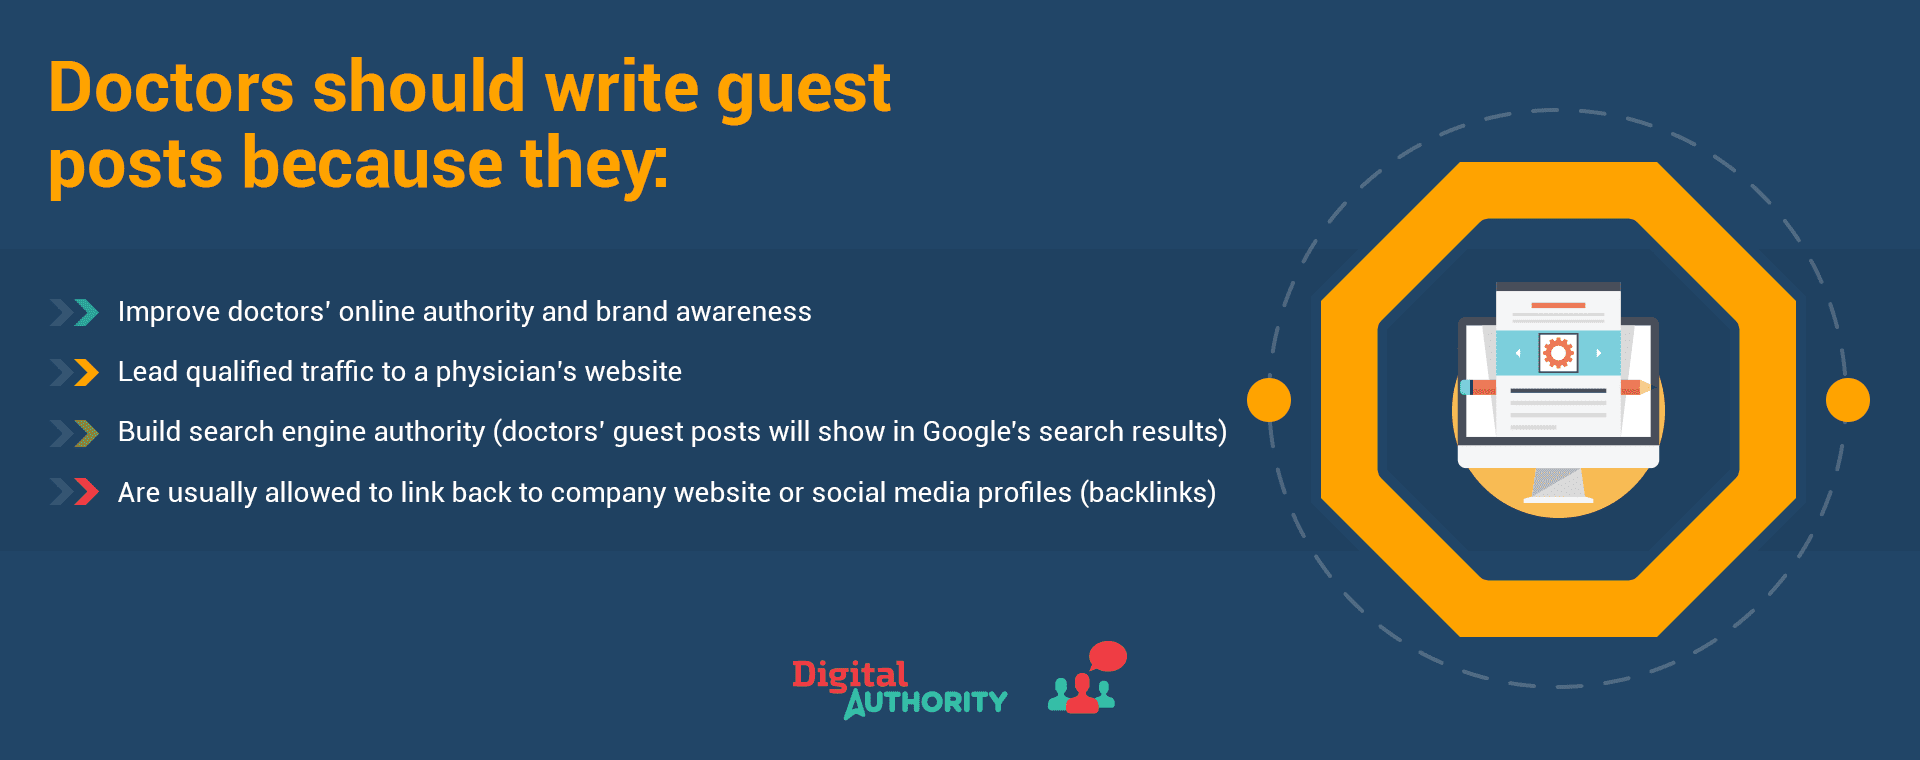 Graphic explaining why doctors should write guest posts